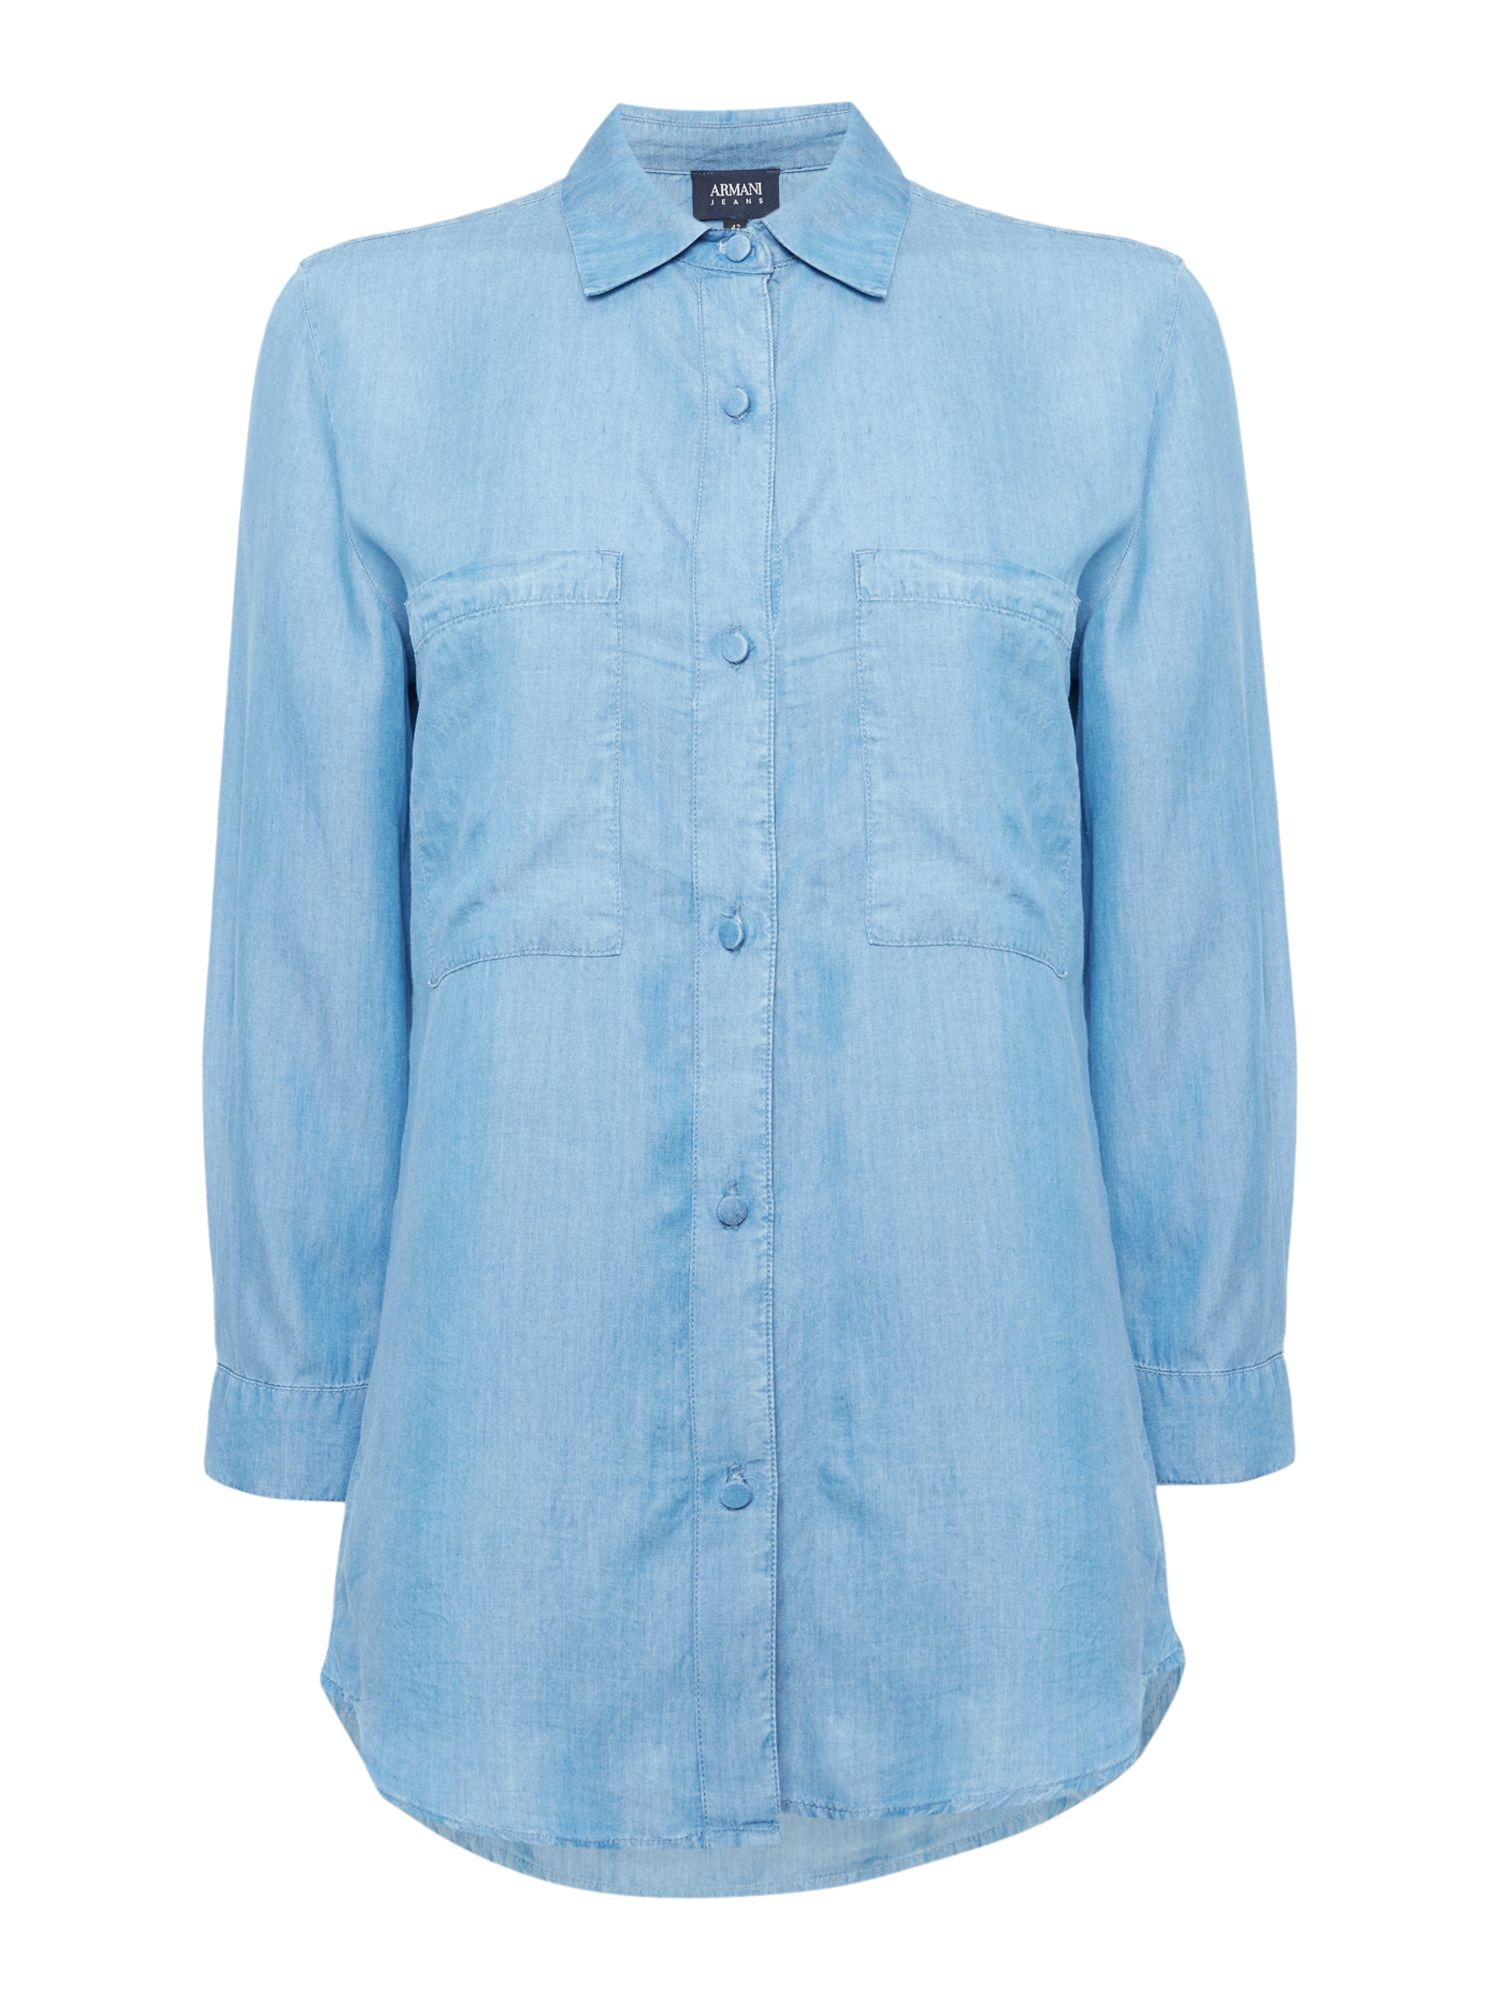 Armani Jeans Denim shirt with chest pockets in blu denim, Denim